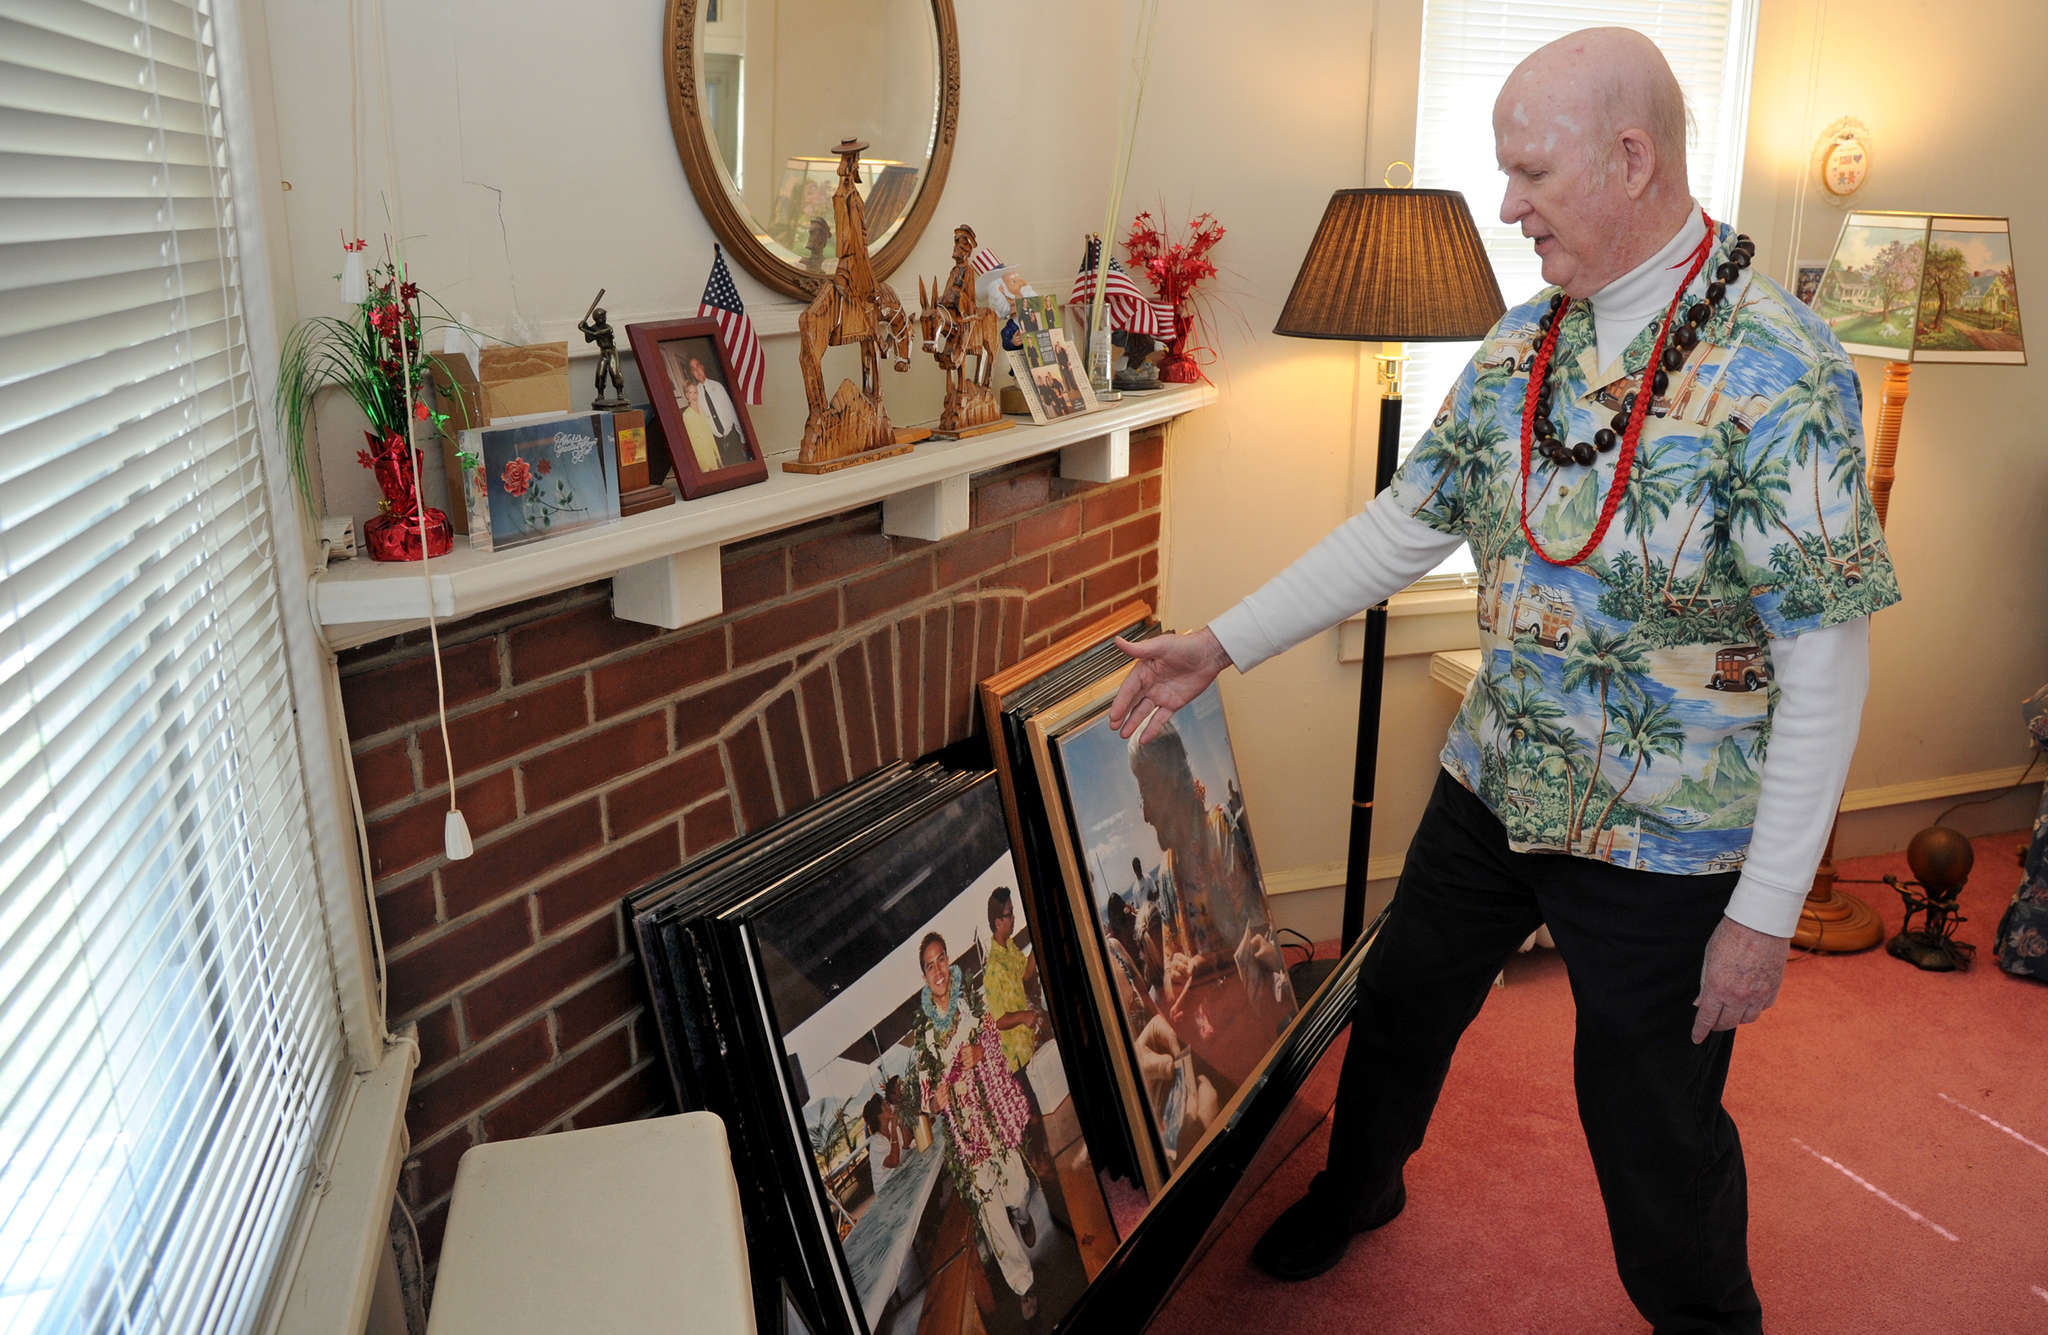 In the living room of his home in Audubon, Craig E. Burgess, a retired Cherry Hill East teacher, looks through photos from his many visits to Hawaii.